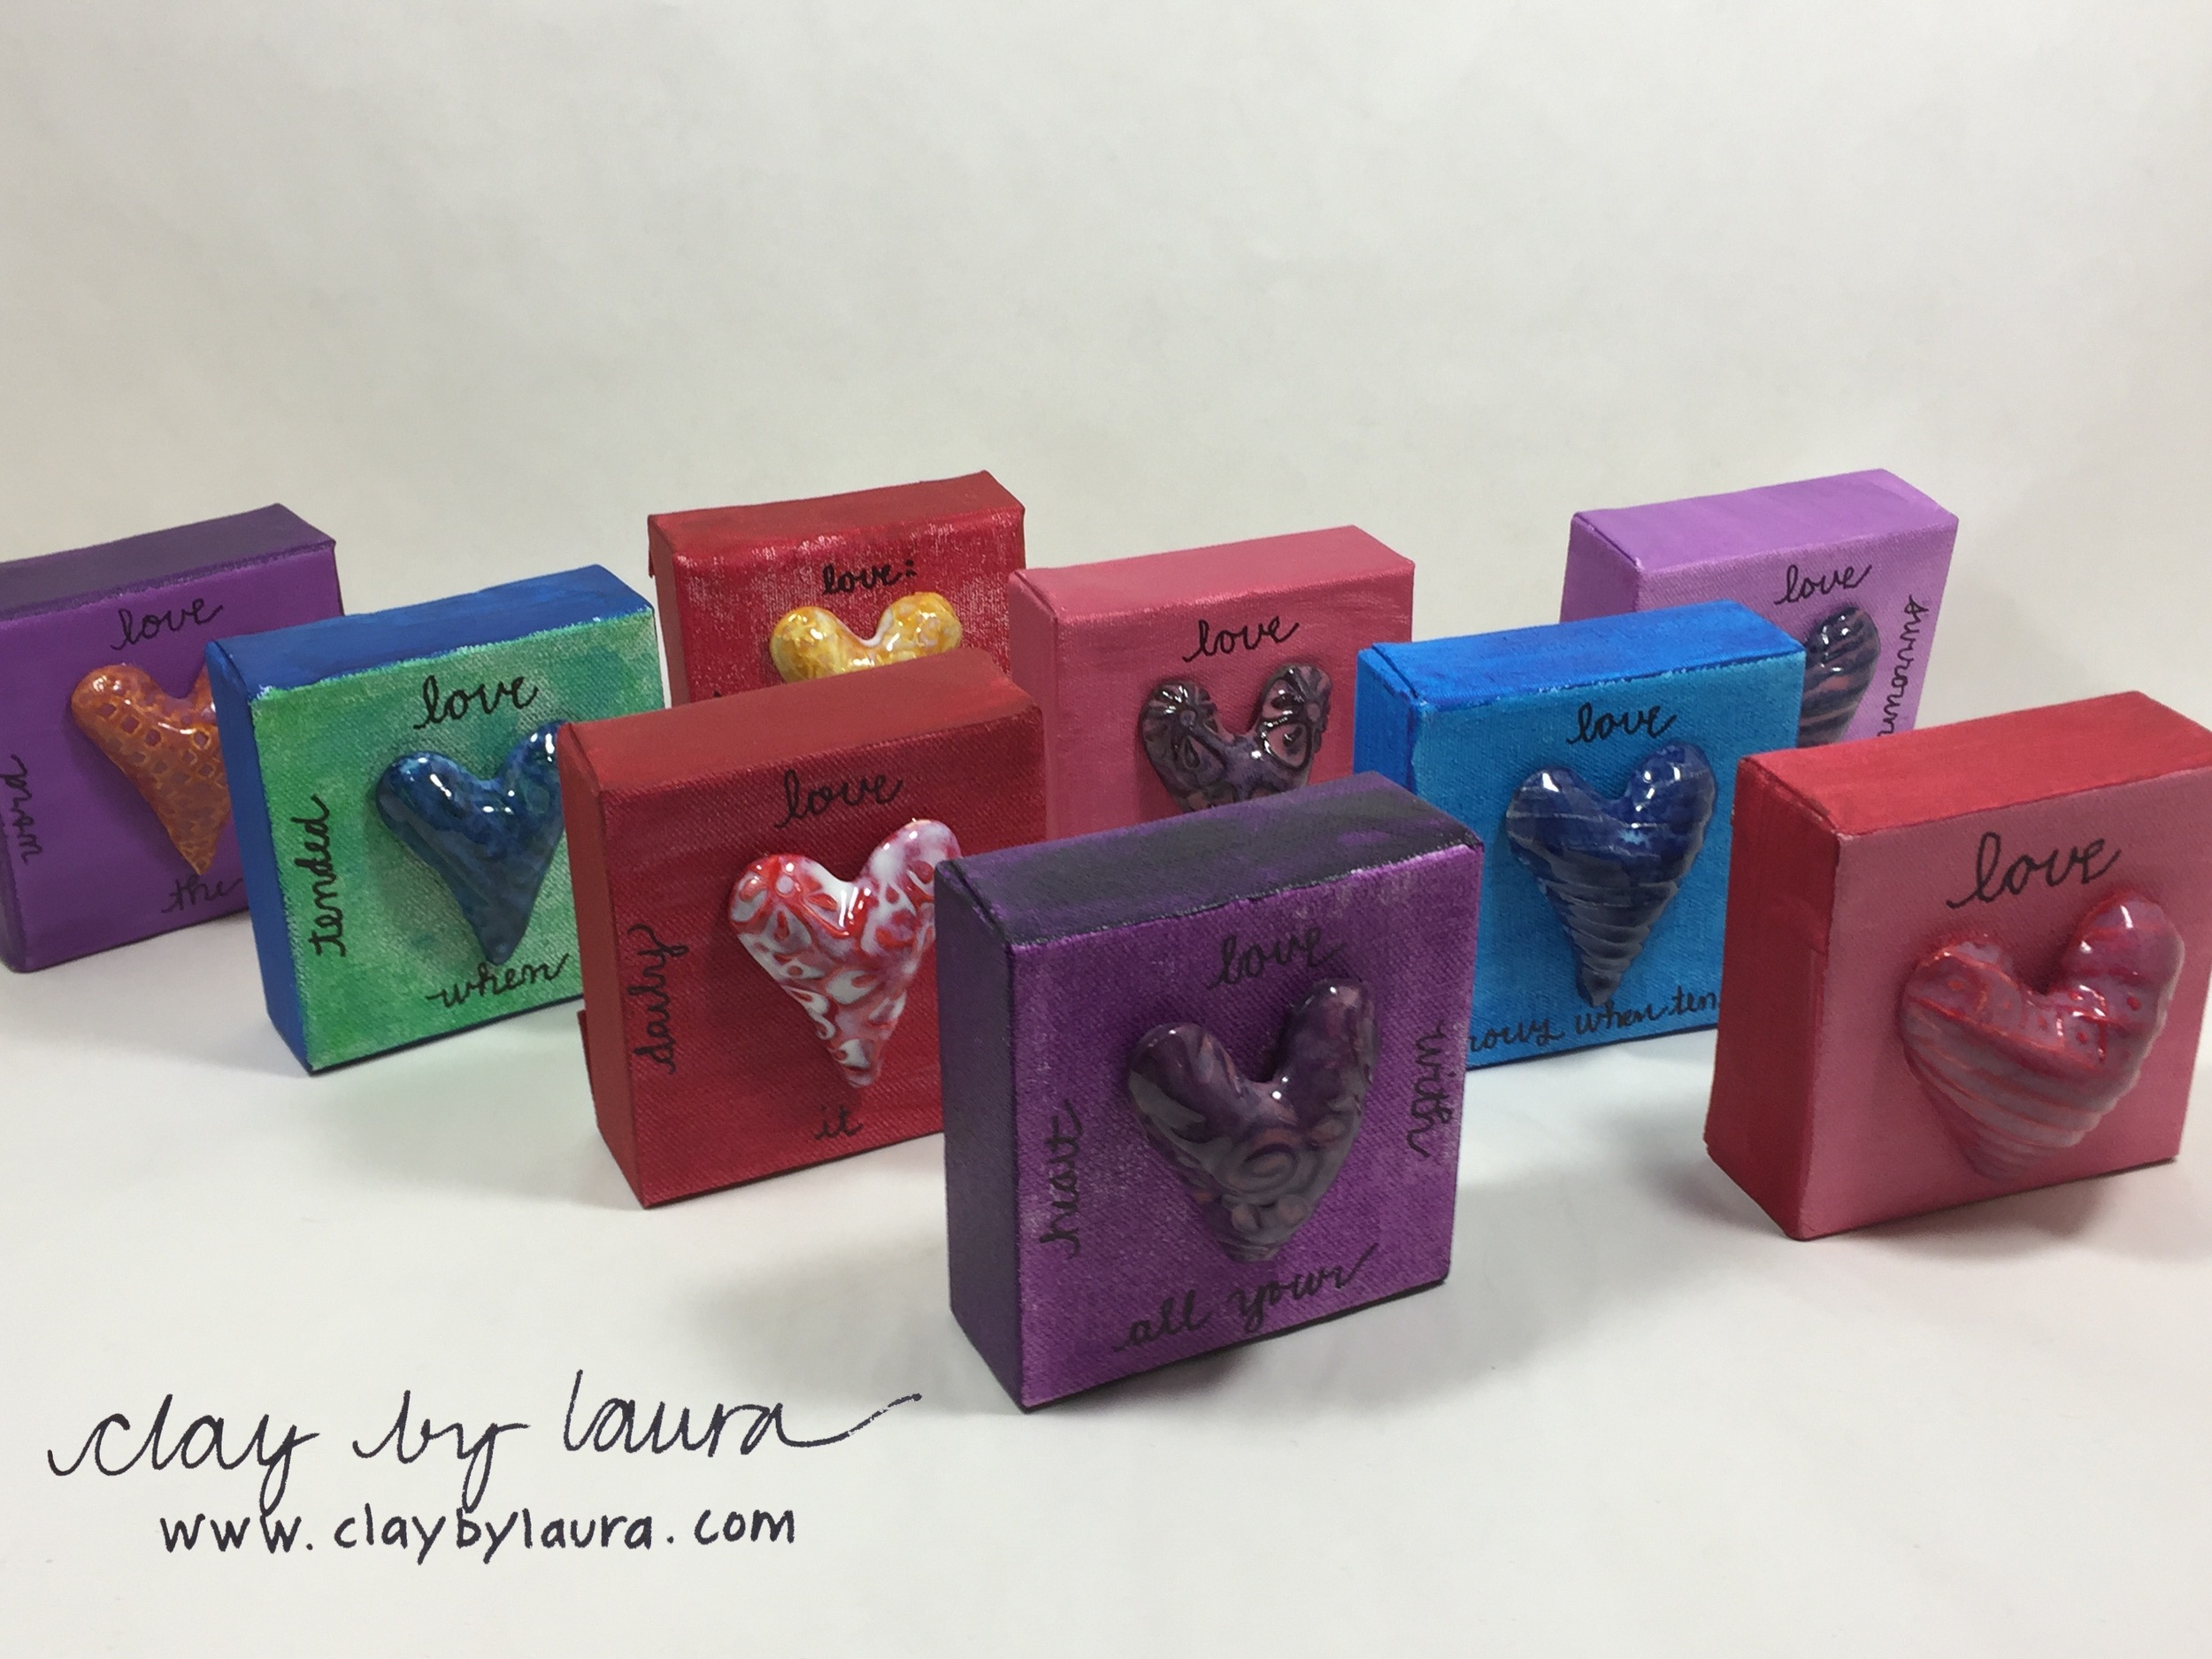 Spell out your message of love with one of these colorful Clay Hearts on Canvas. $42 well spent will send this creative artwork to your recipient.